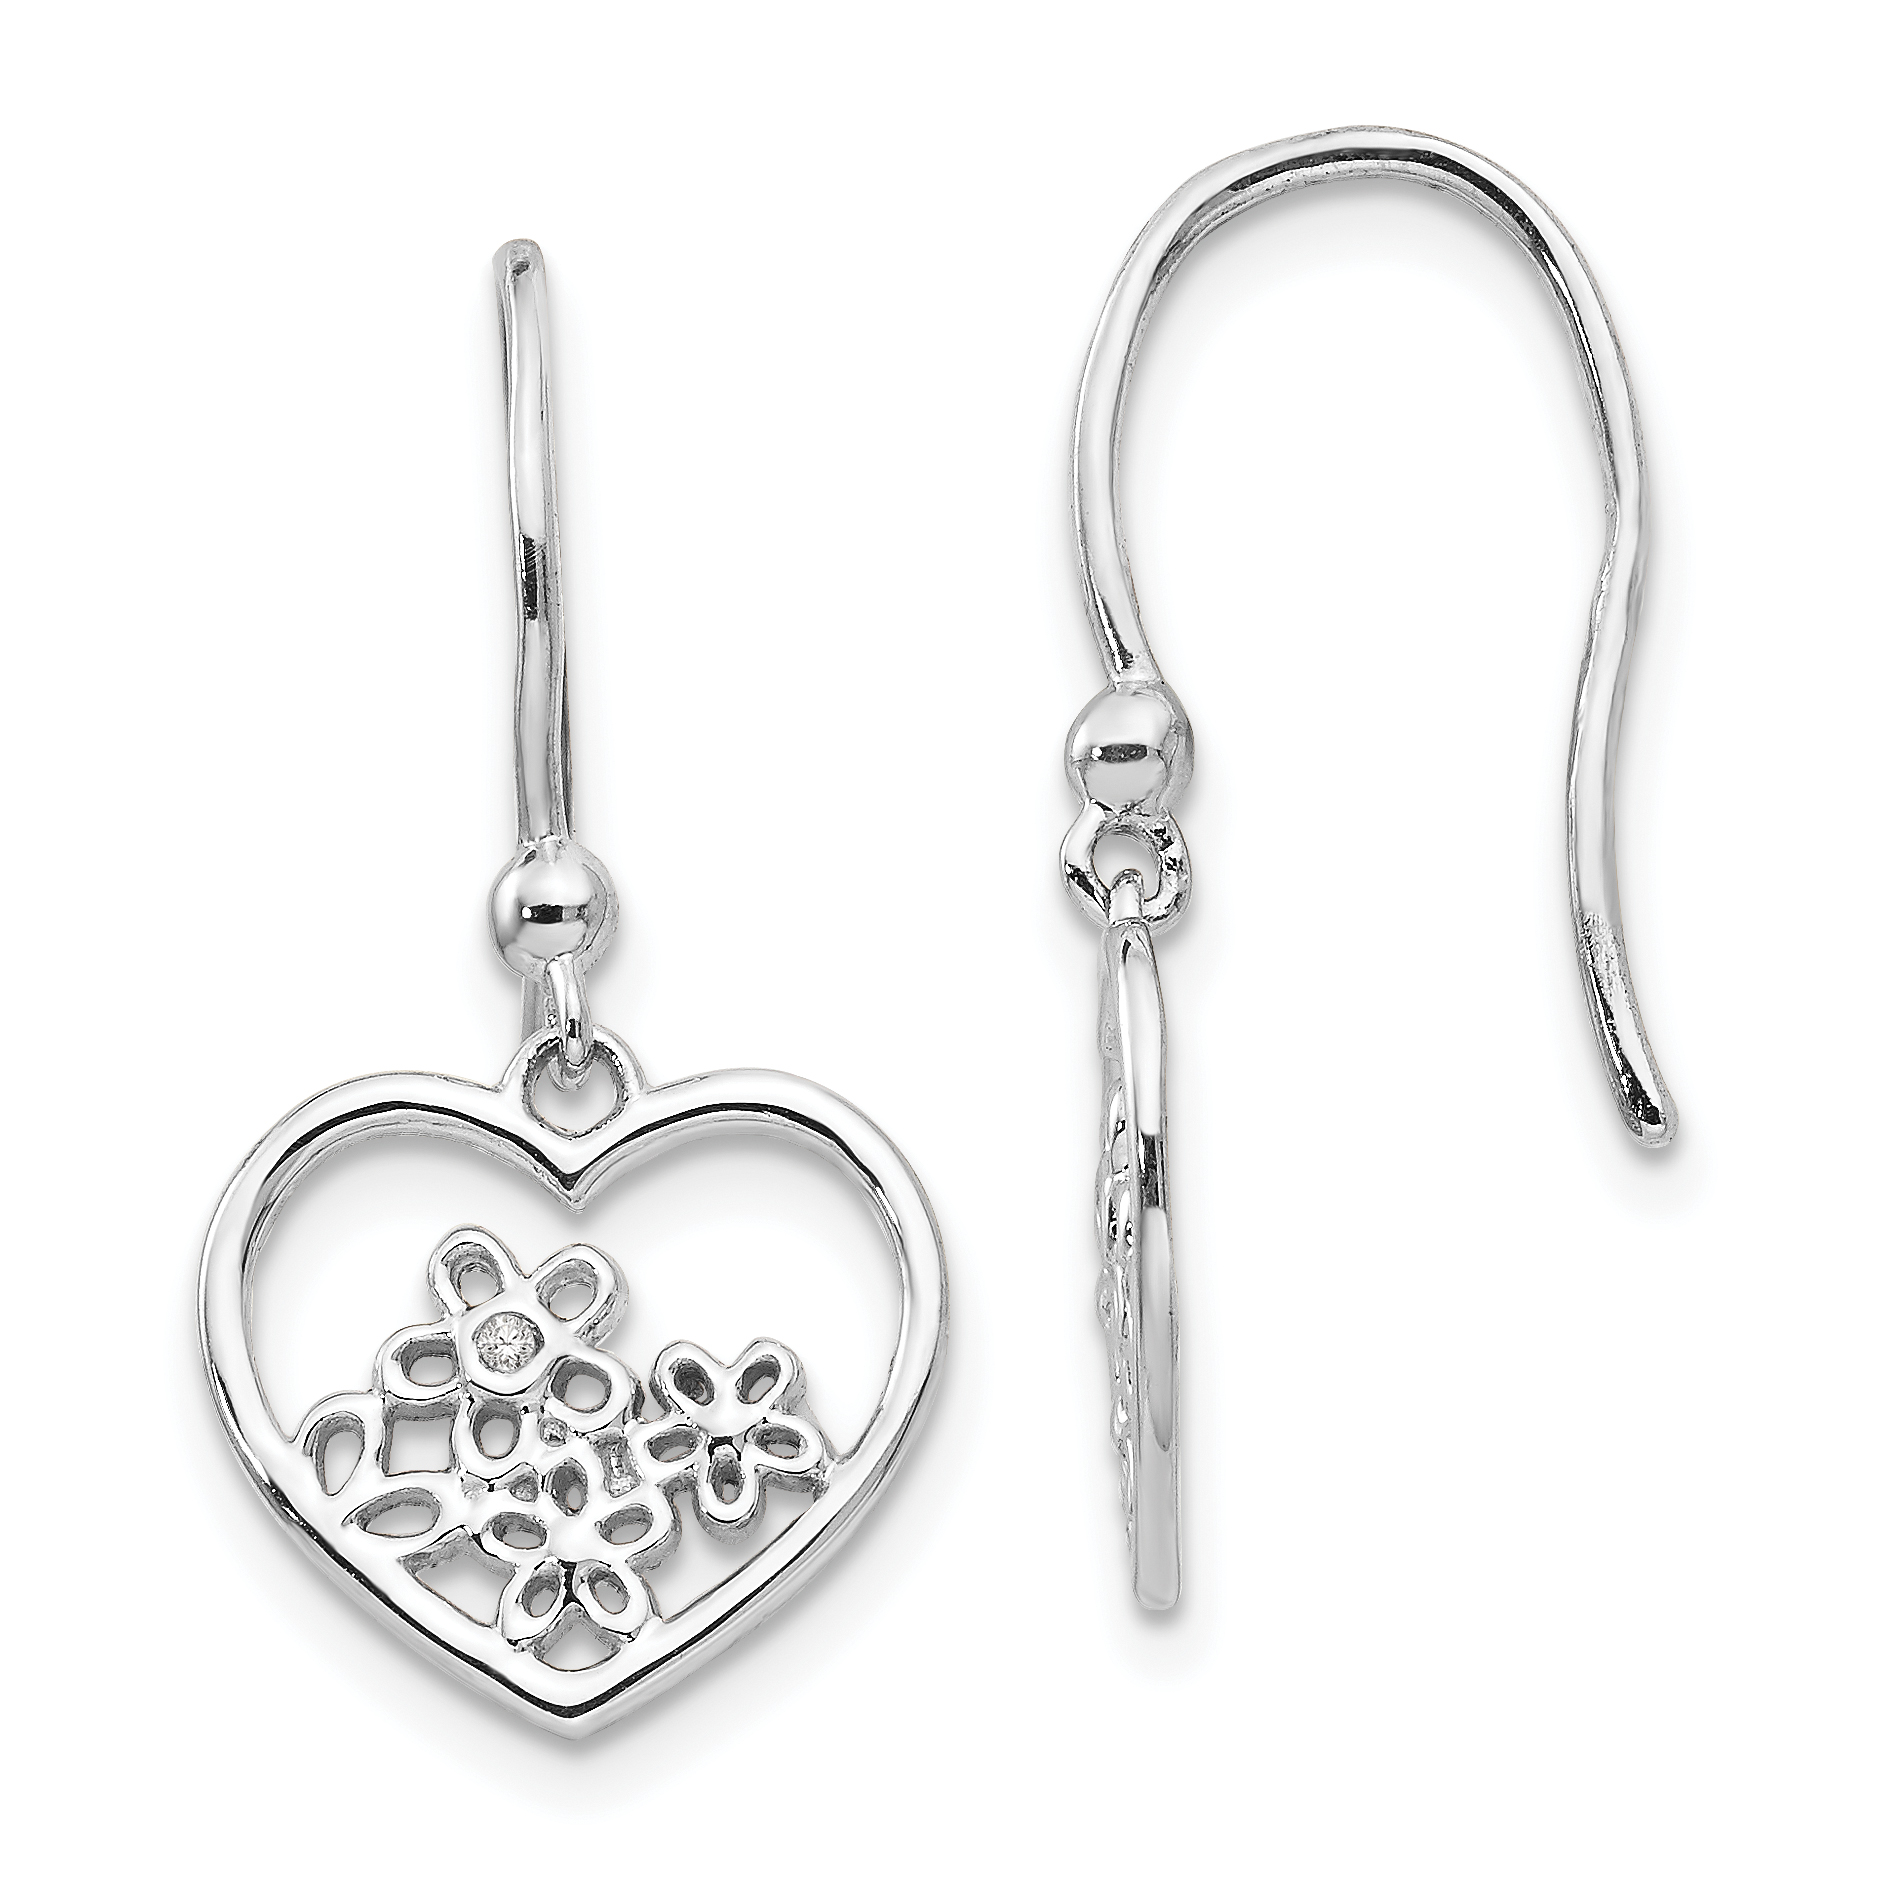 Ss White Ice Heart Shaped W Flower Shepherd Hook Earrings